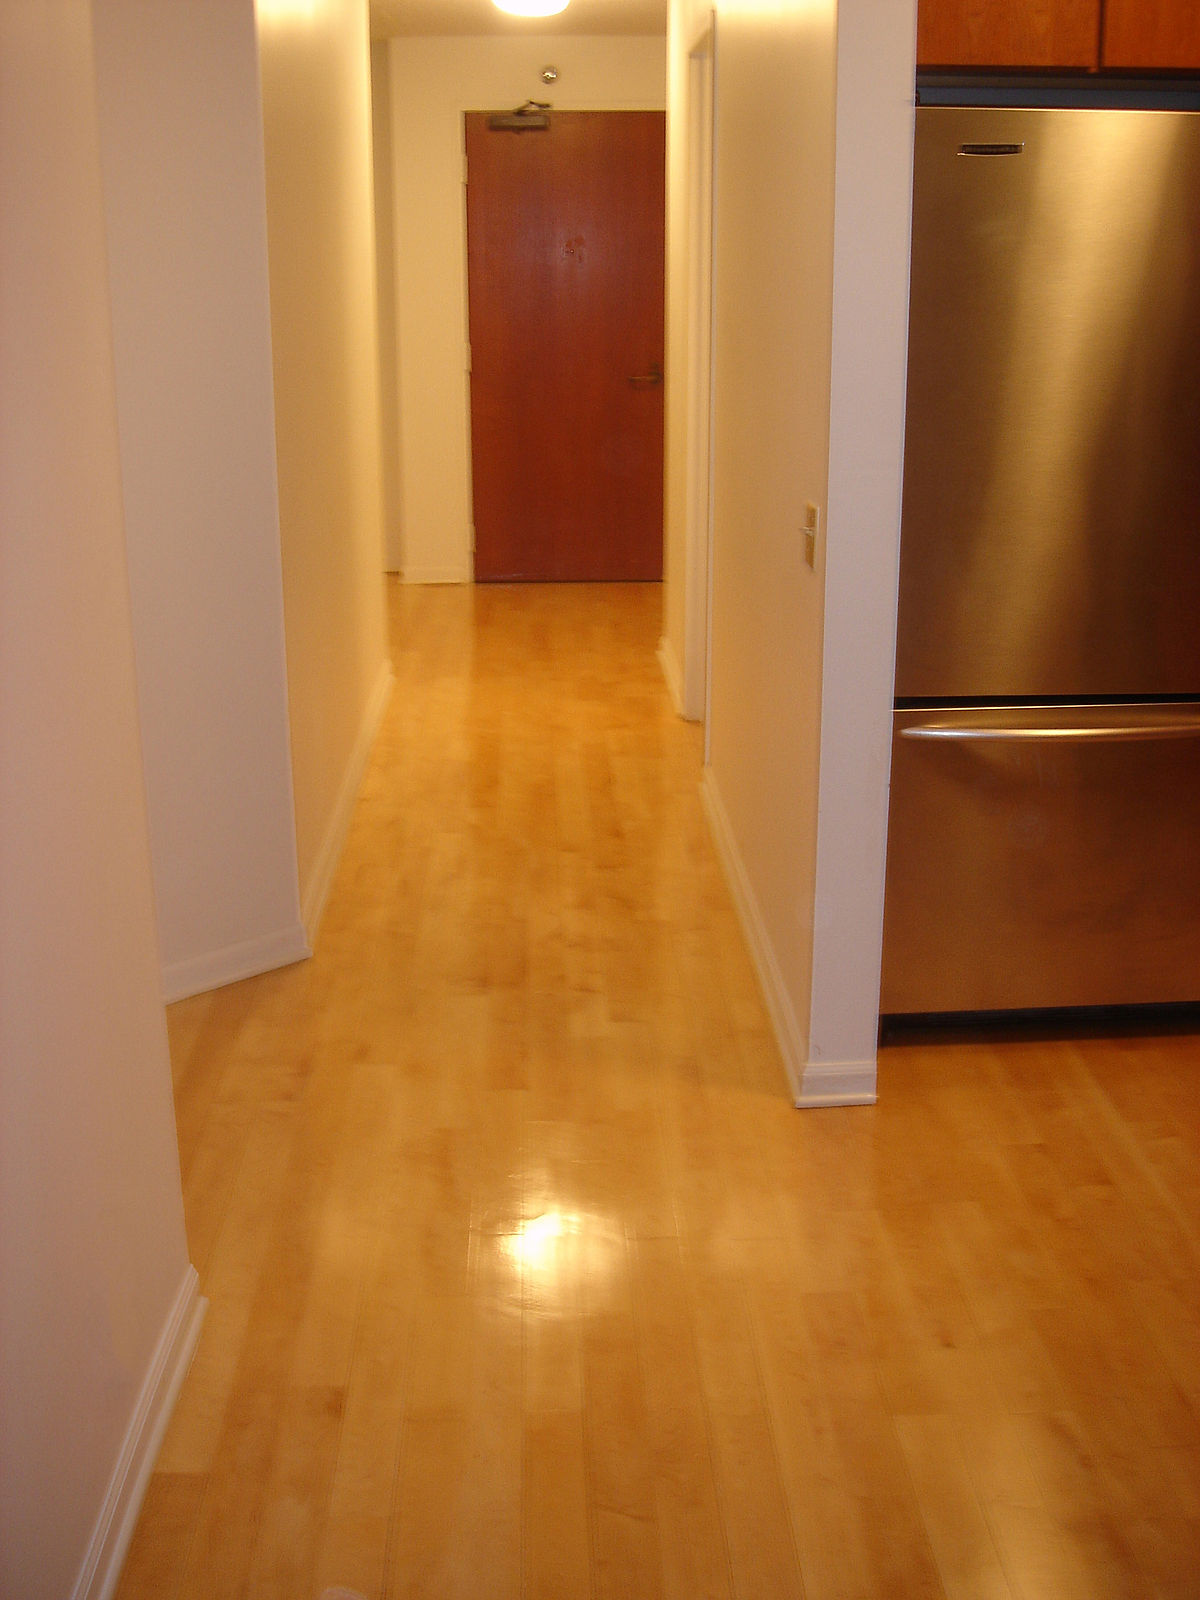 hardwood floors. Plain Hardwood In Hardwood Floors